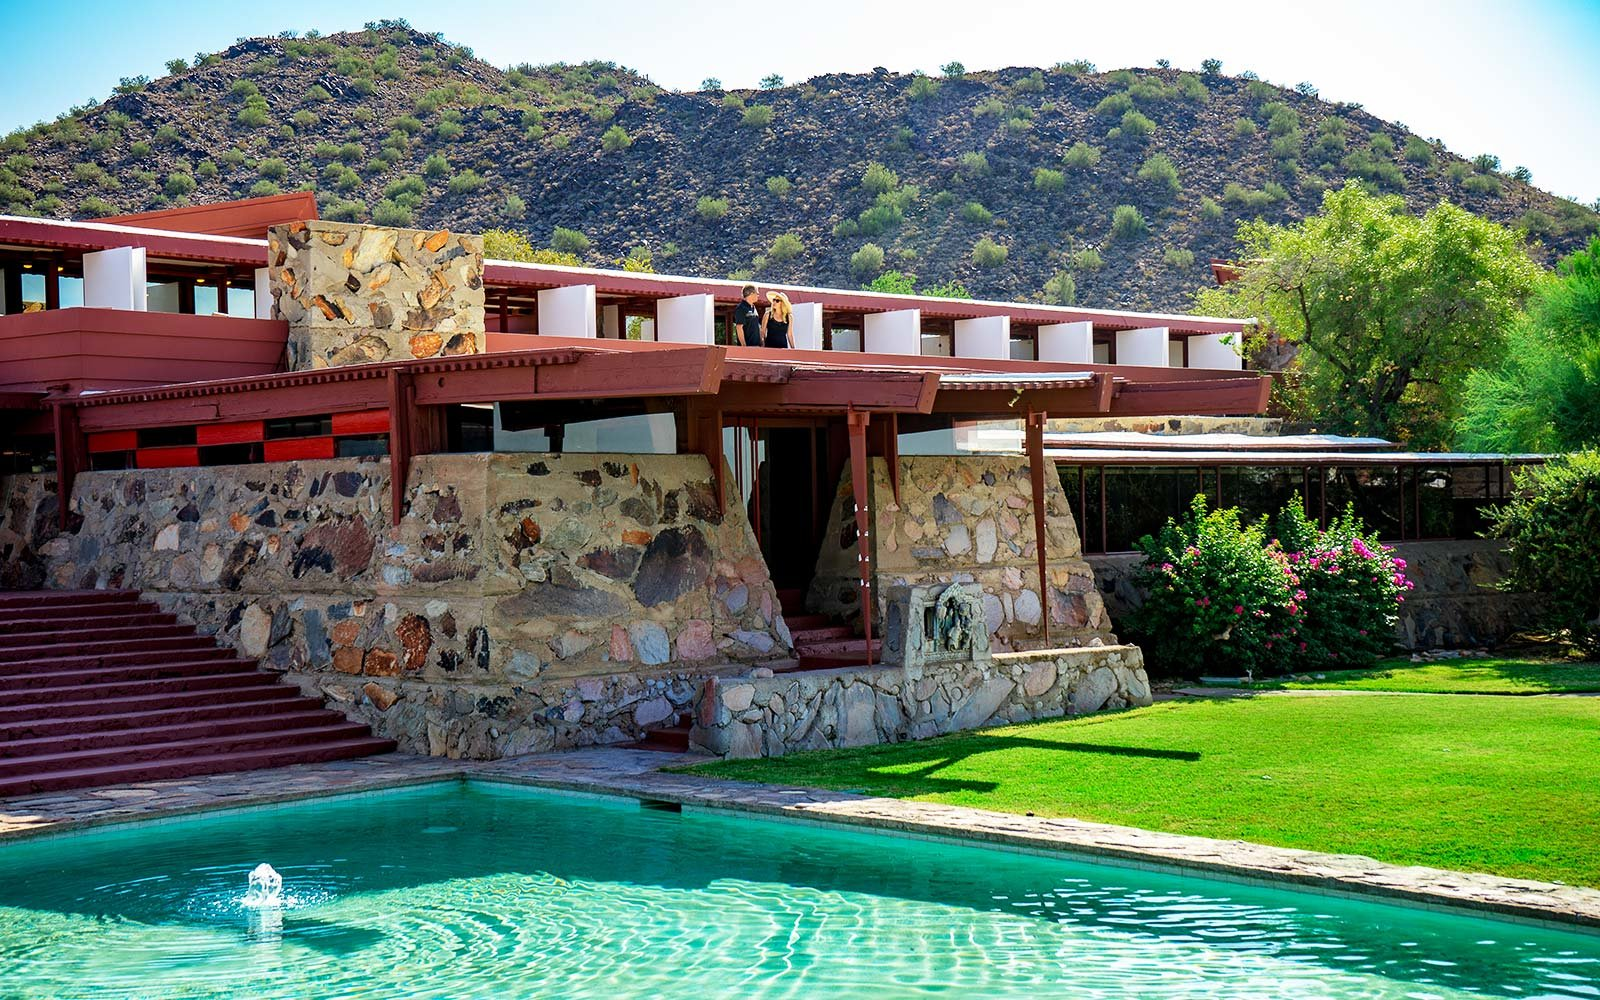 10 must see houses designed by master architect frank lloyd wright - Houses Pic